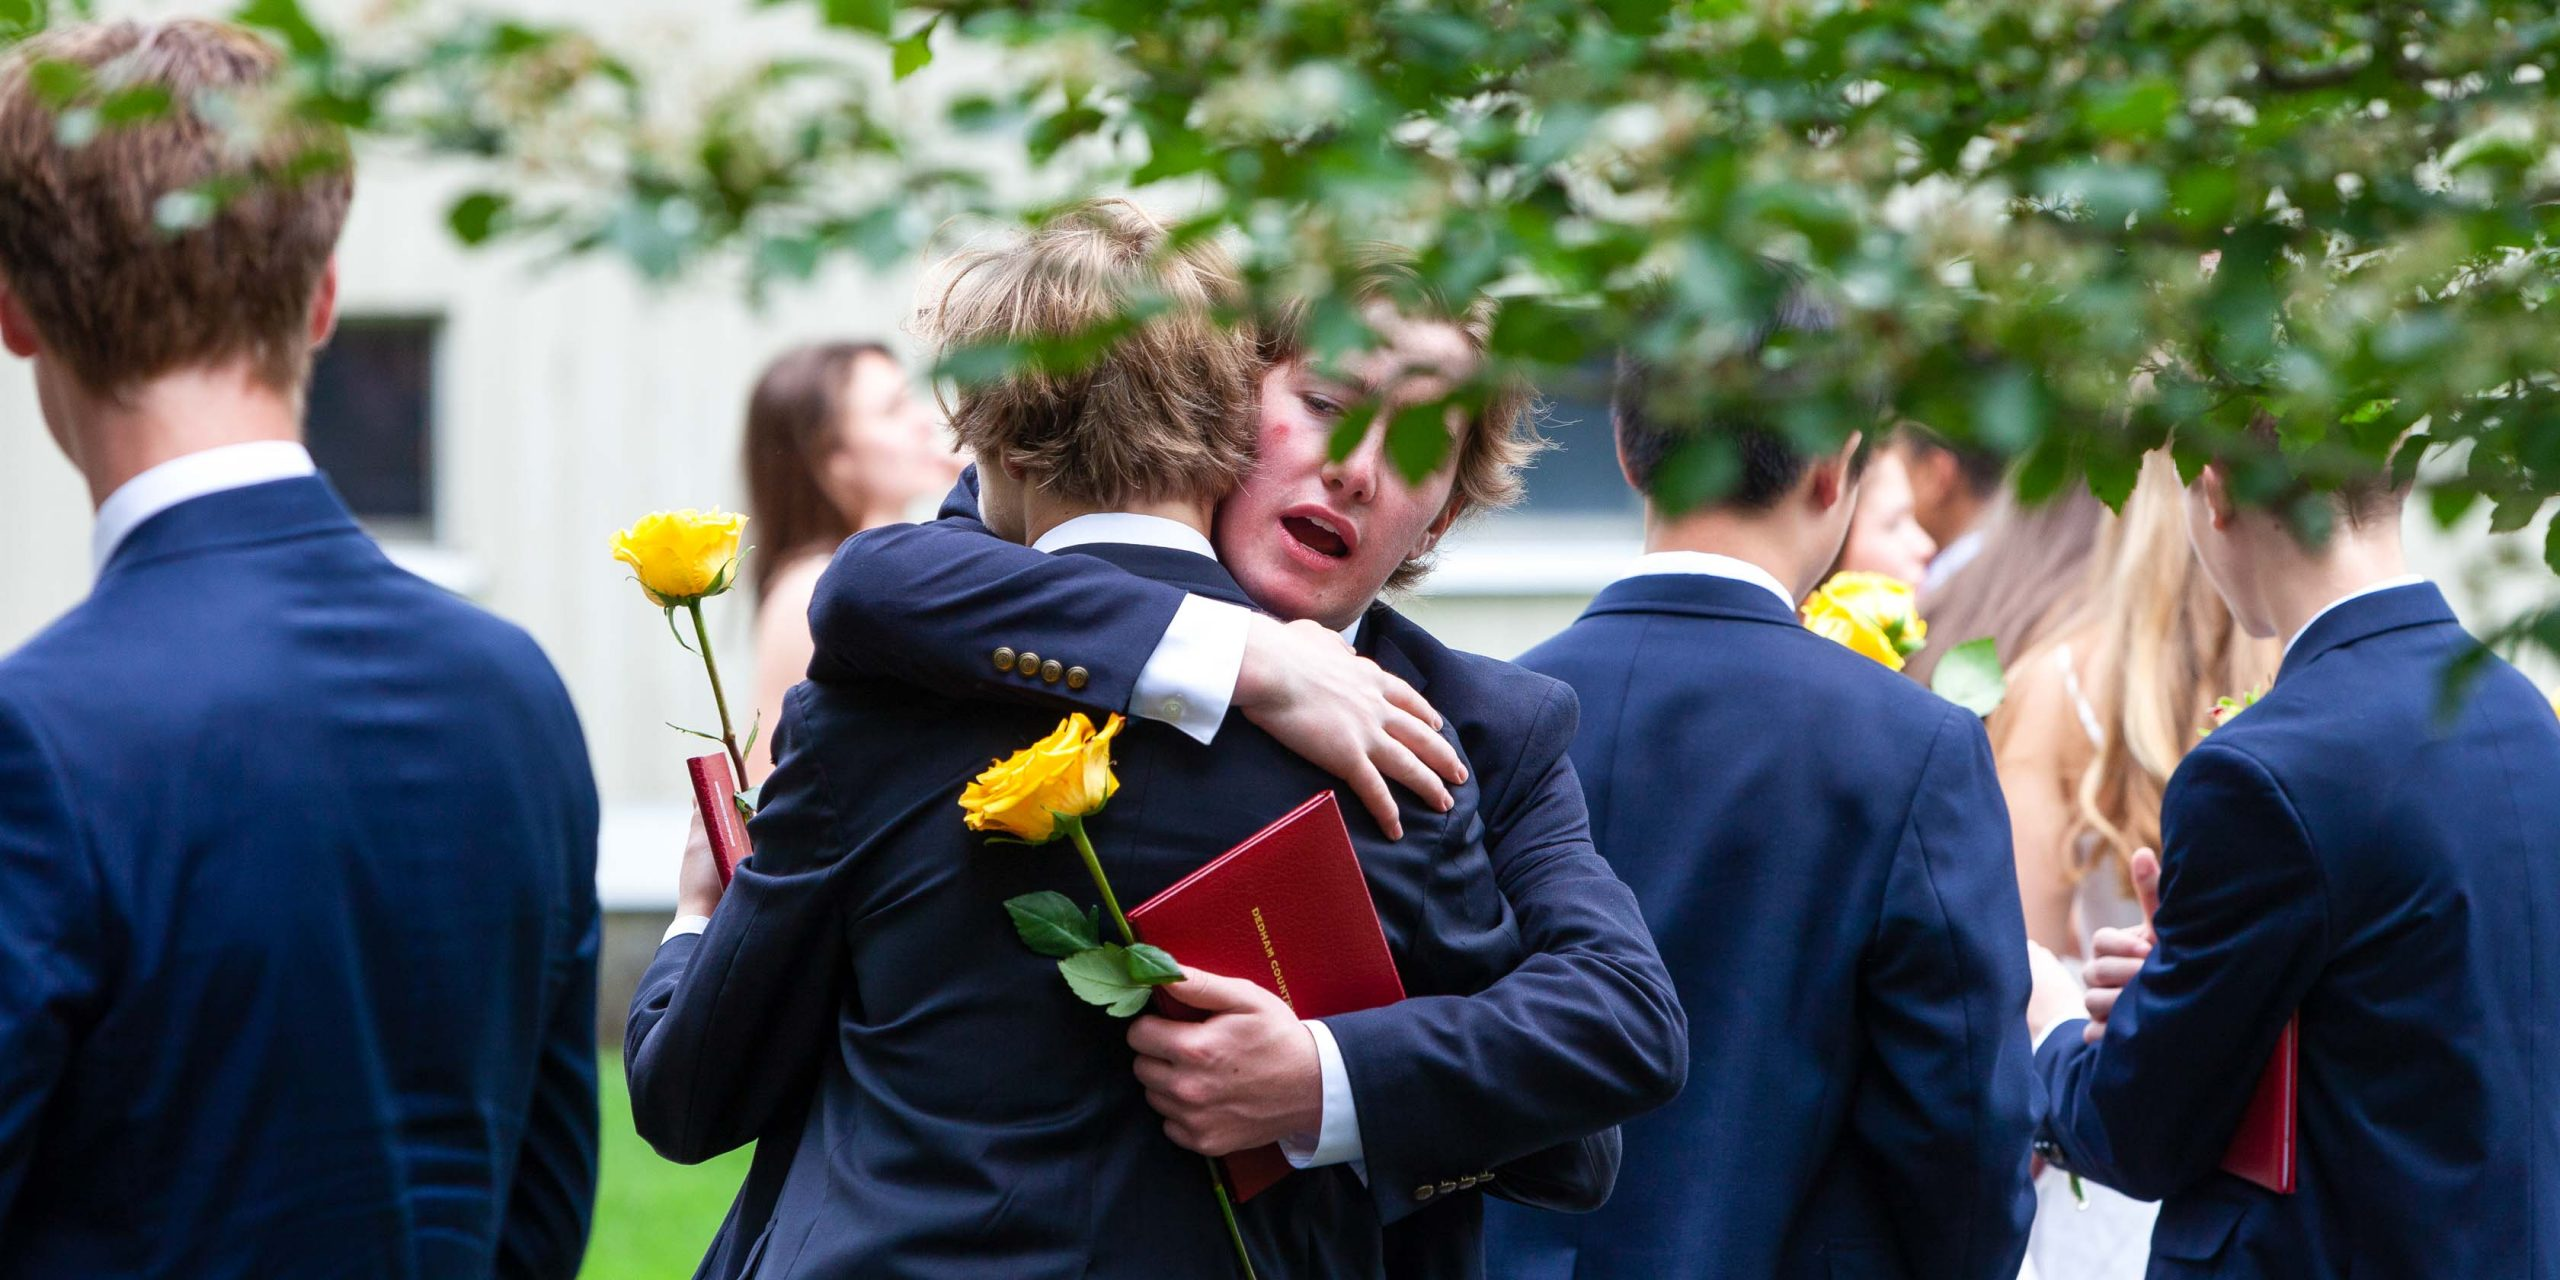 Students hugging after the graduation ceremony.